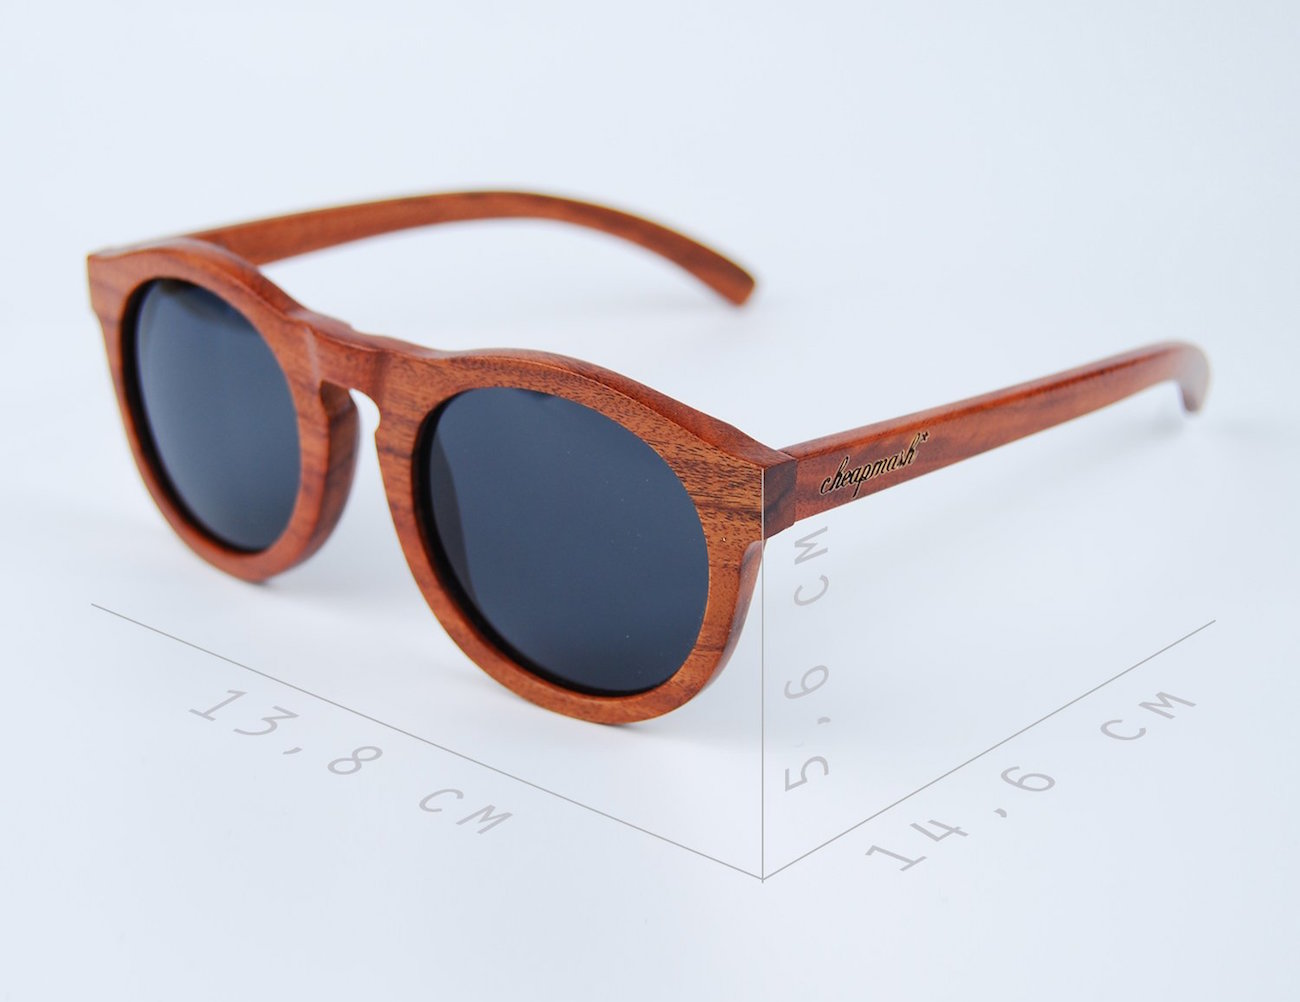 Onyx Wooden Sunglasses – Handmade Design With Polarized Lenses